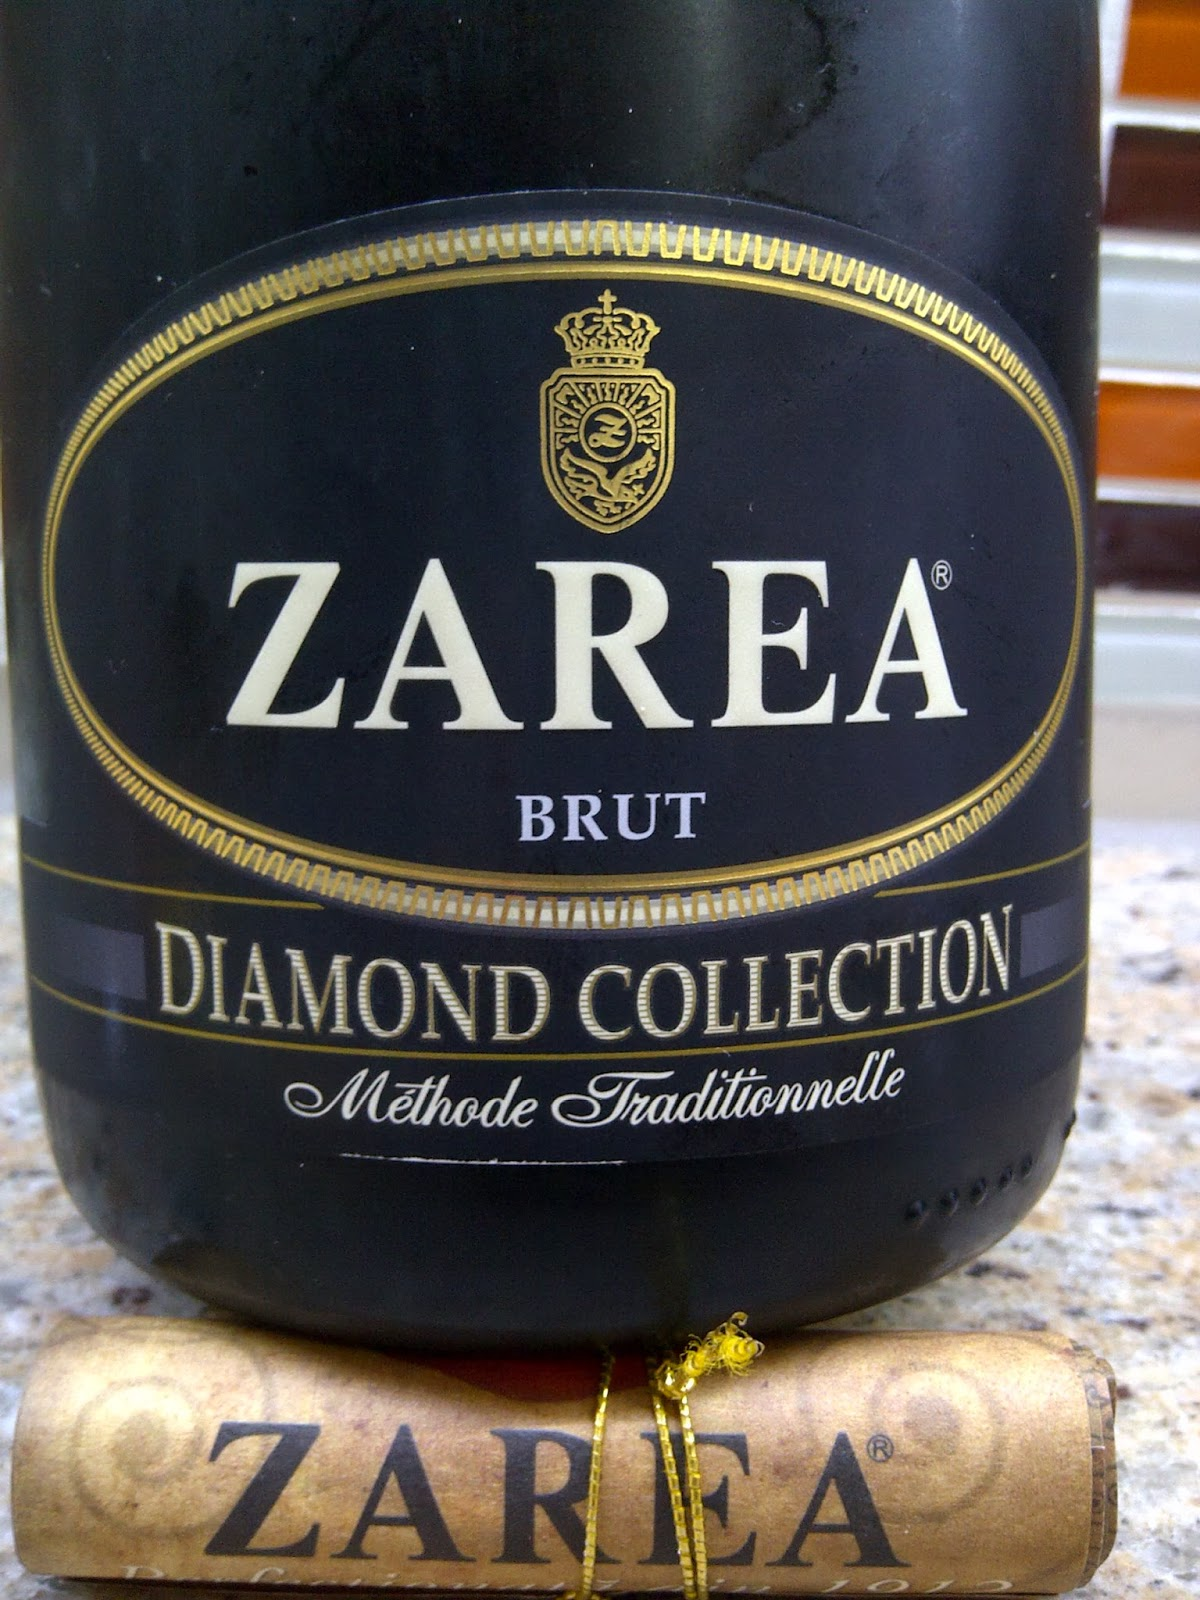 Zarea Brut Diamond Collection.jpg